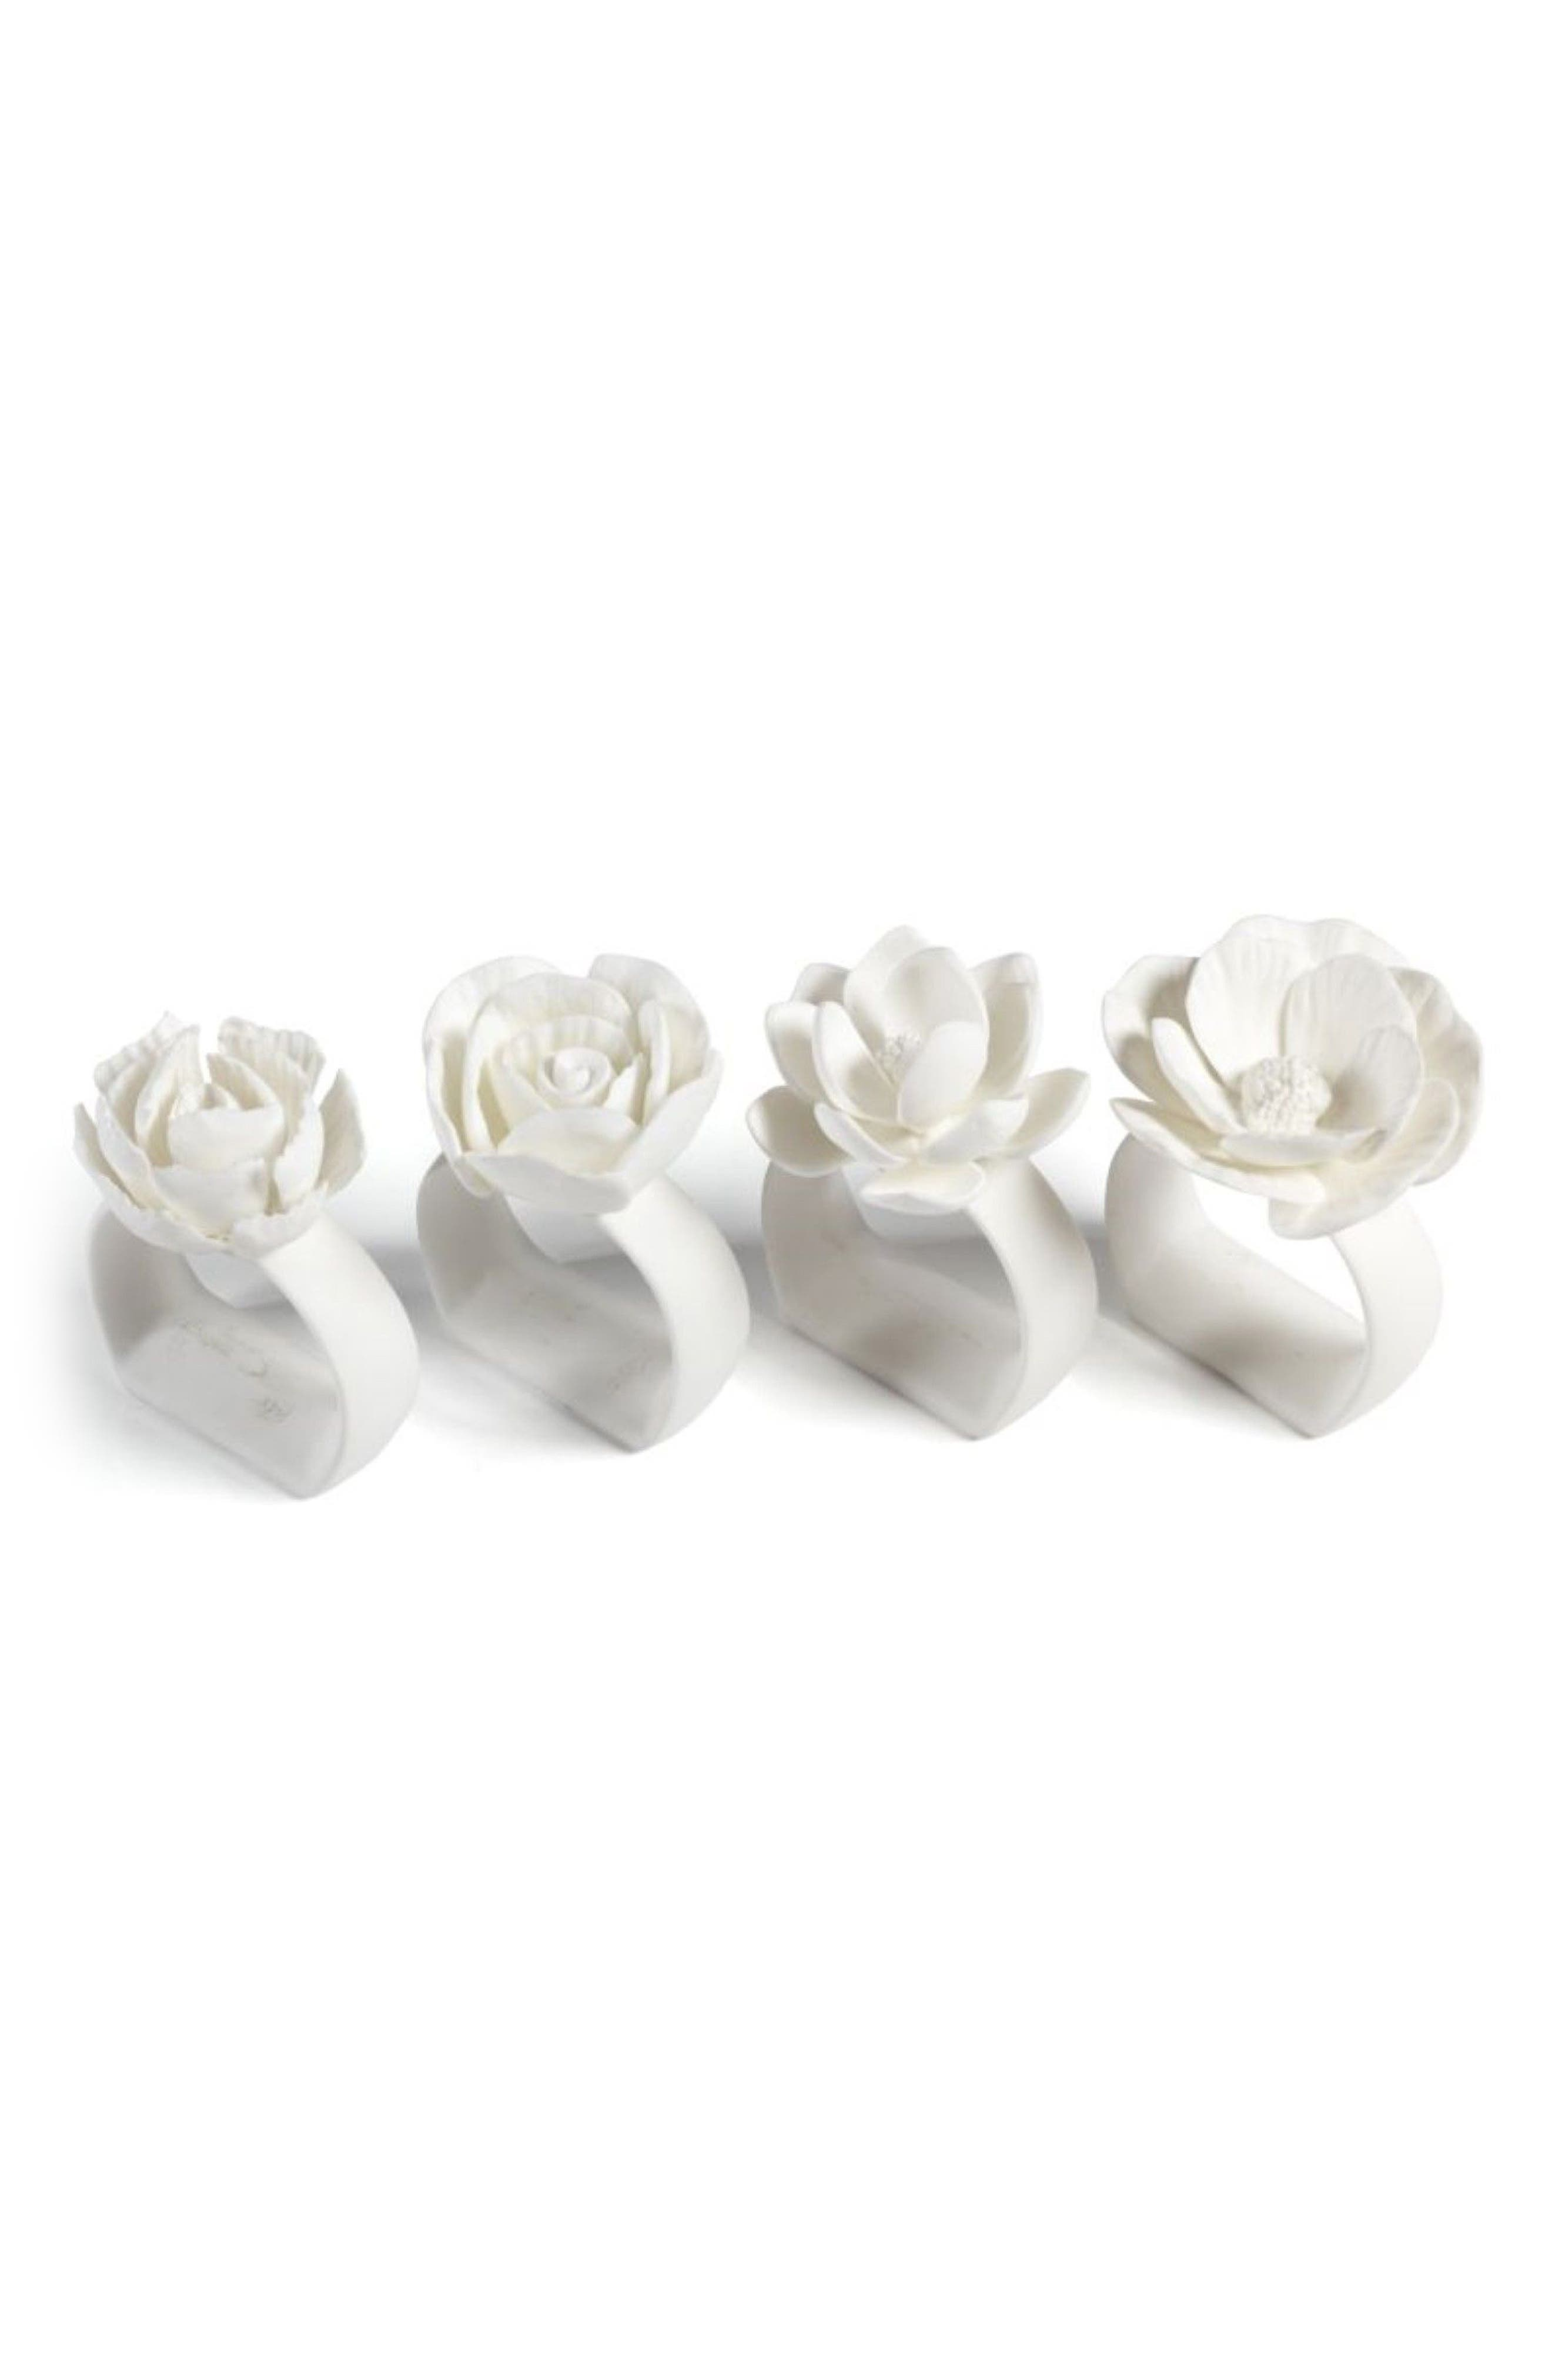 Zodax Cameo Set of 4 Napkin Rings